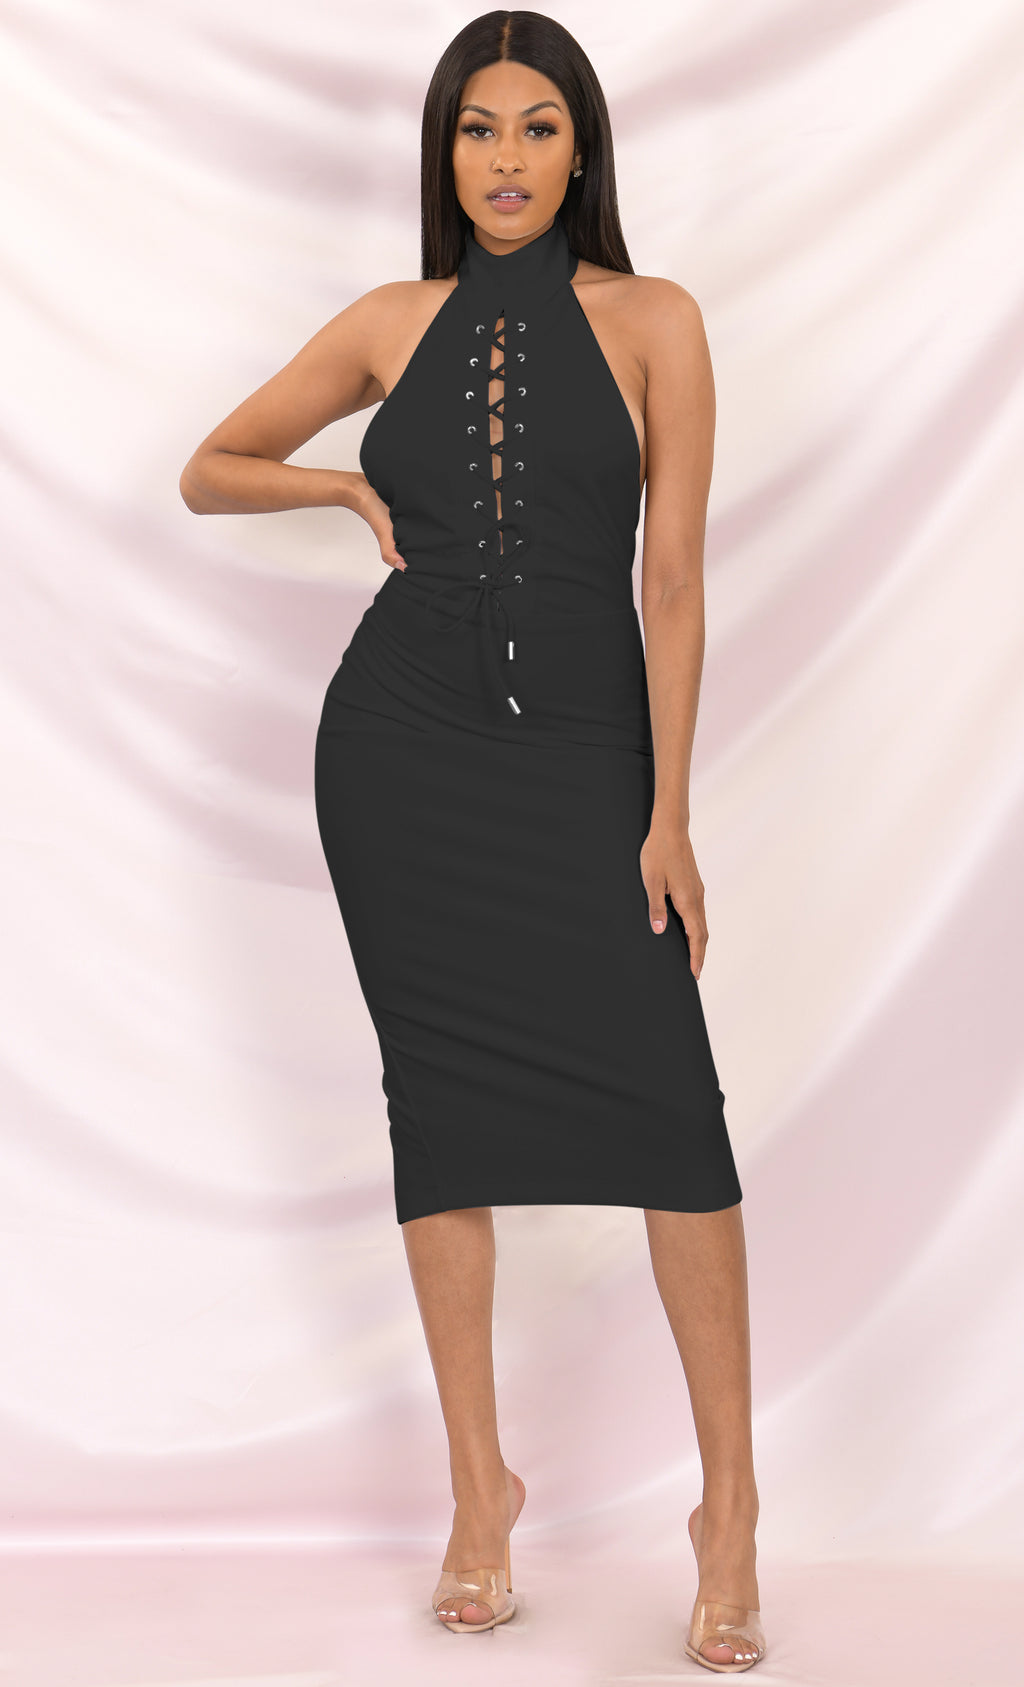 Tied To You Black Sleeveless Mock Neck Halter Cut Out Lace Up Bodycon Midi Dress